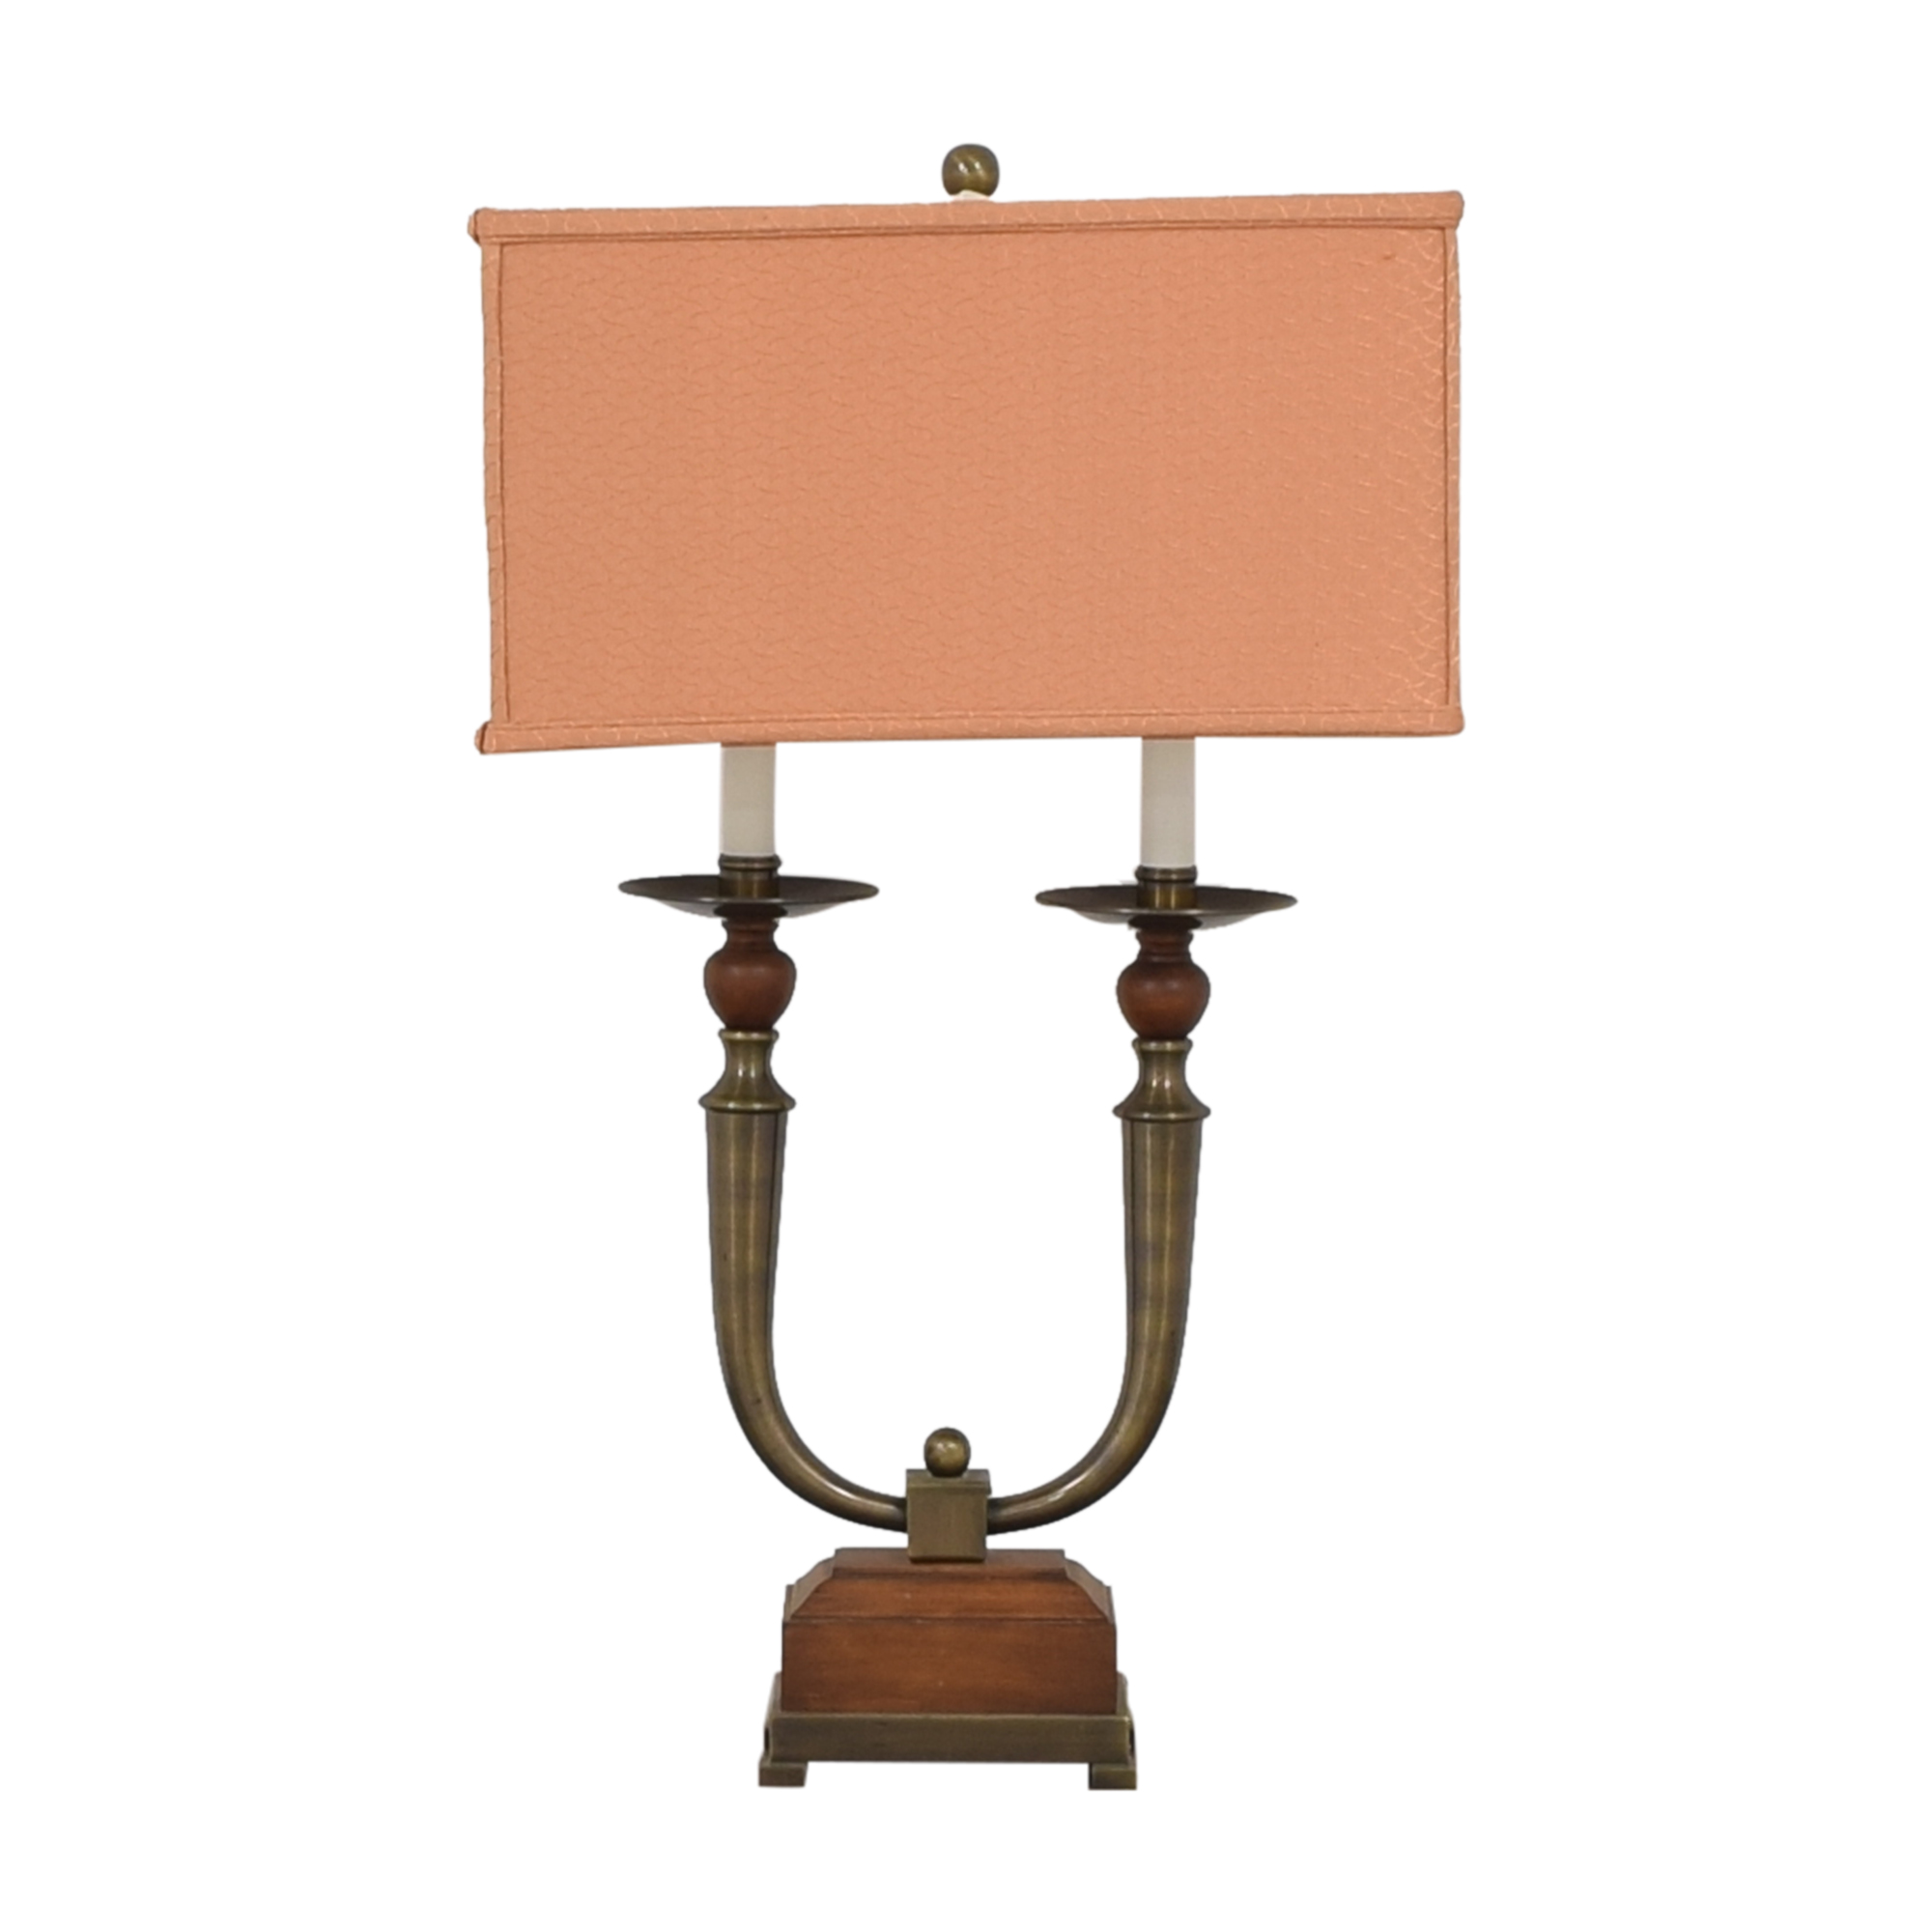 Neiman Marcus Table Lamp / Lamps